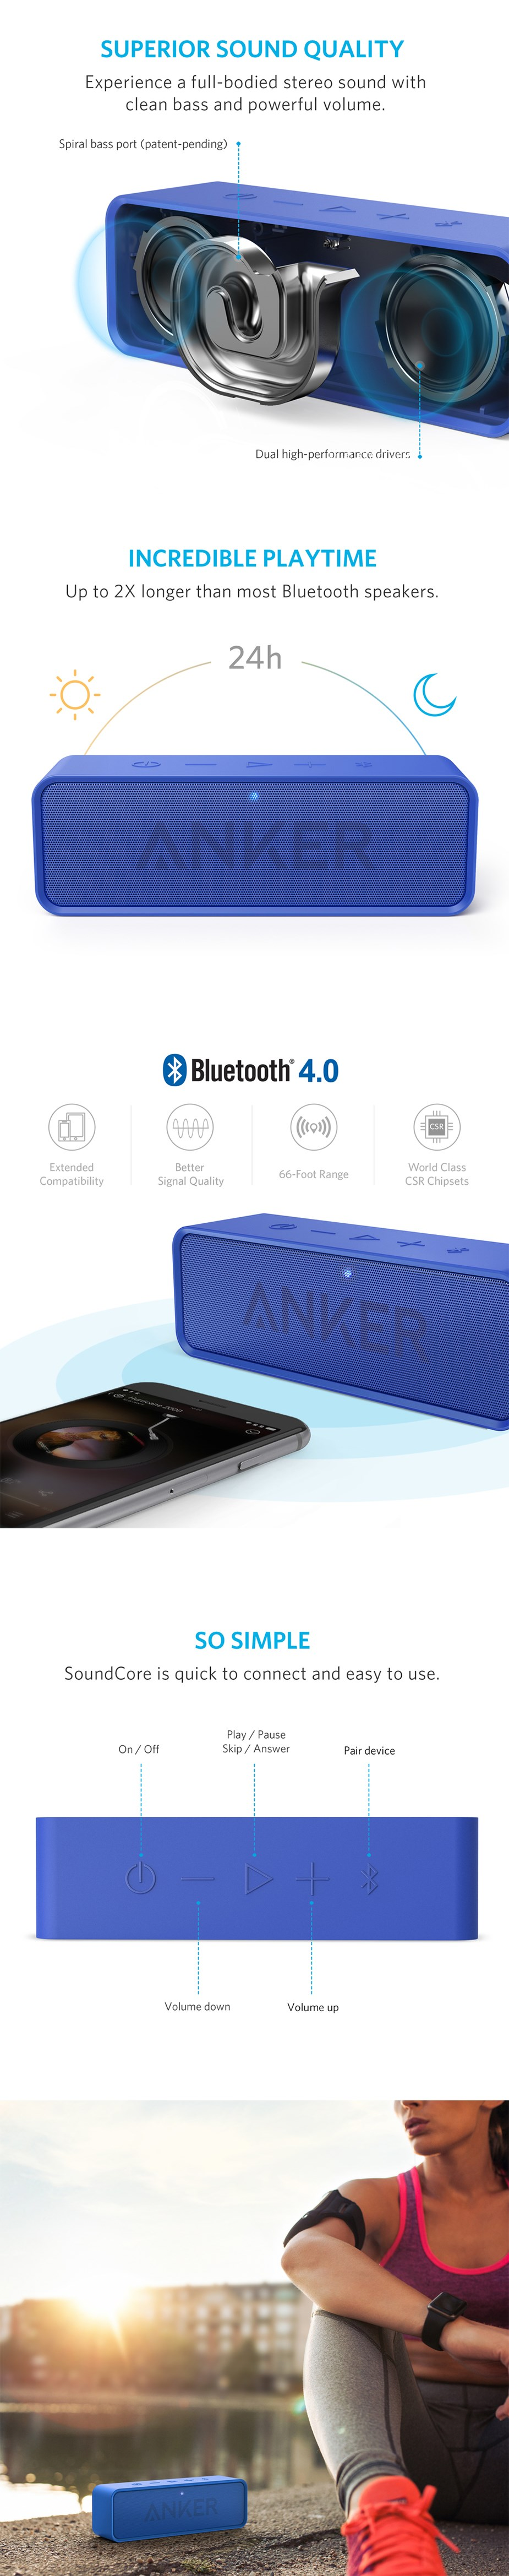 Anker SoundCore Bluetooth Stereo Speakers - Blue - Desktop Overview 1